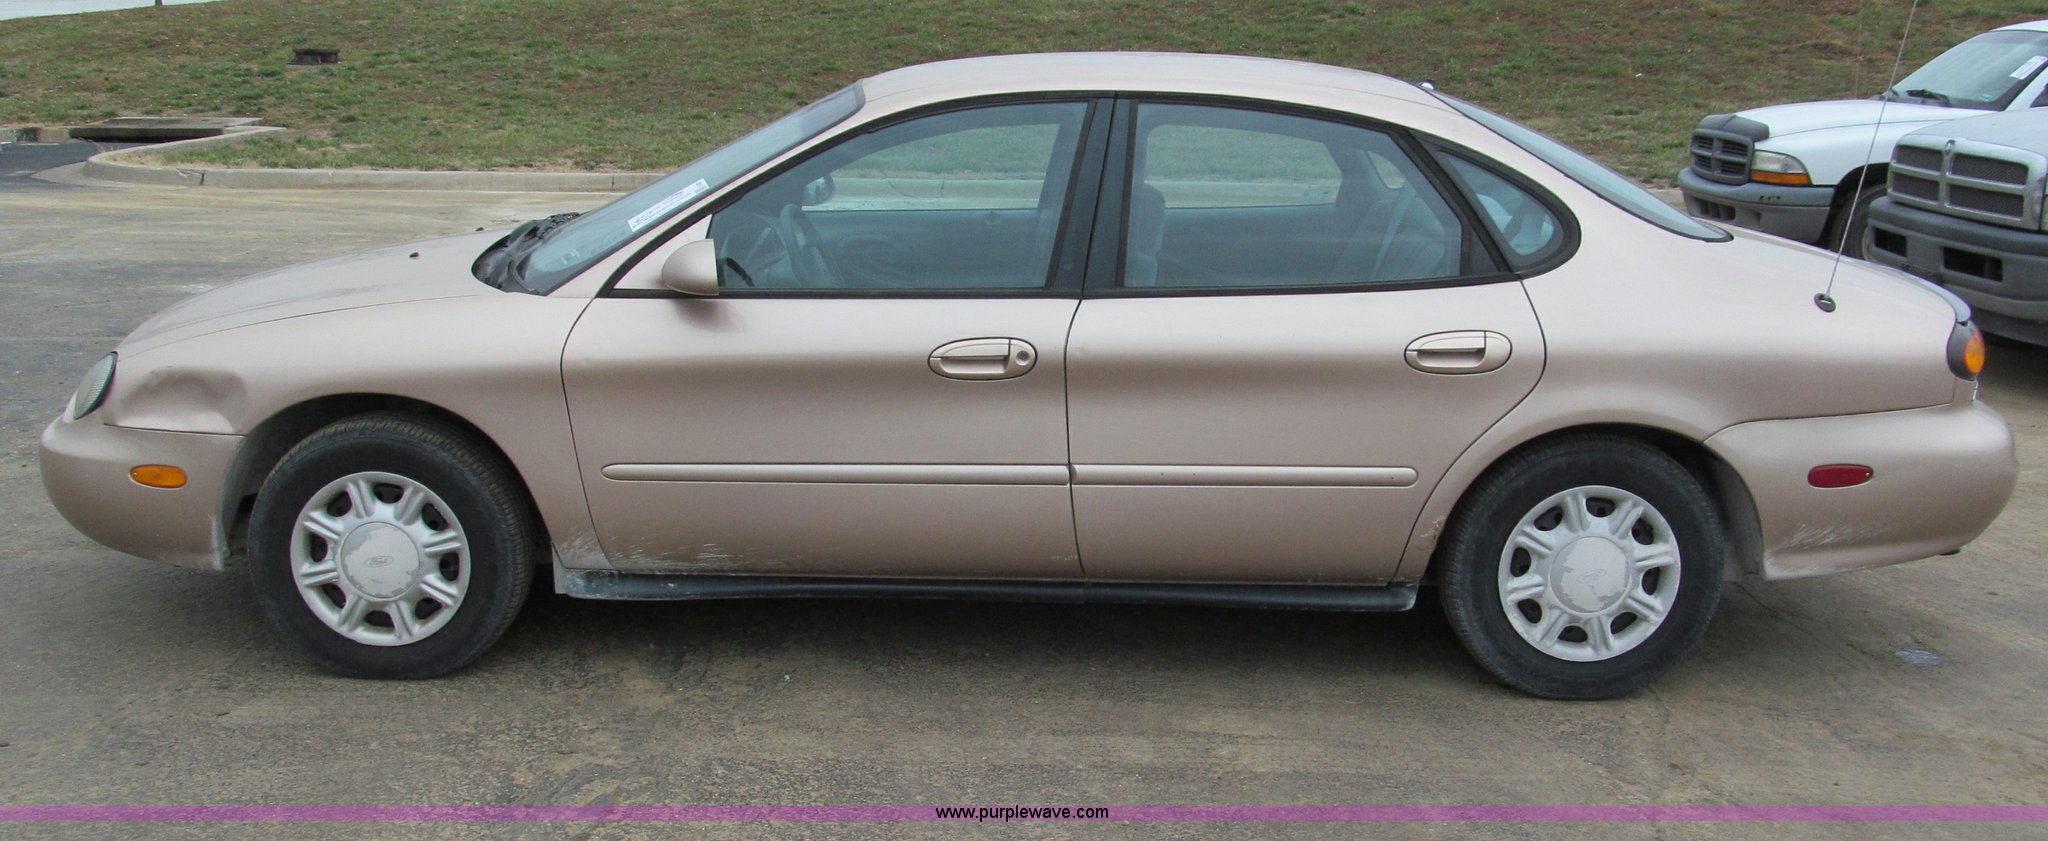 1997 ford taurus gl item e5851 sold tuesday january 8 g 1992 Ford Taurus GL Interior 1997 ford taurus gl full size in new window